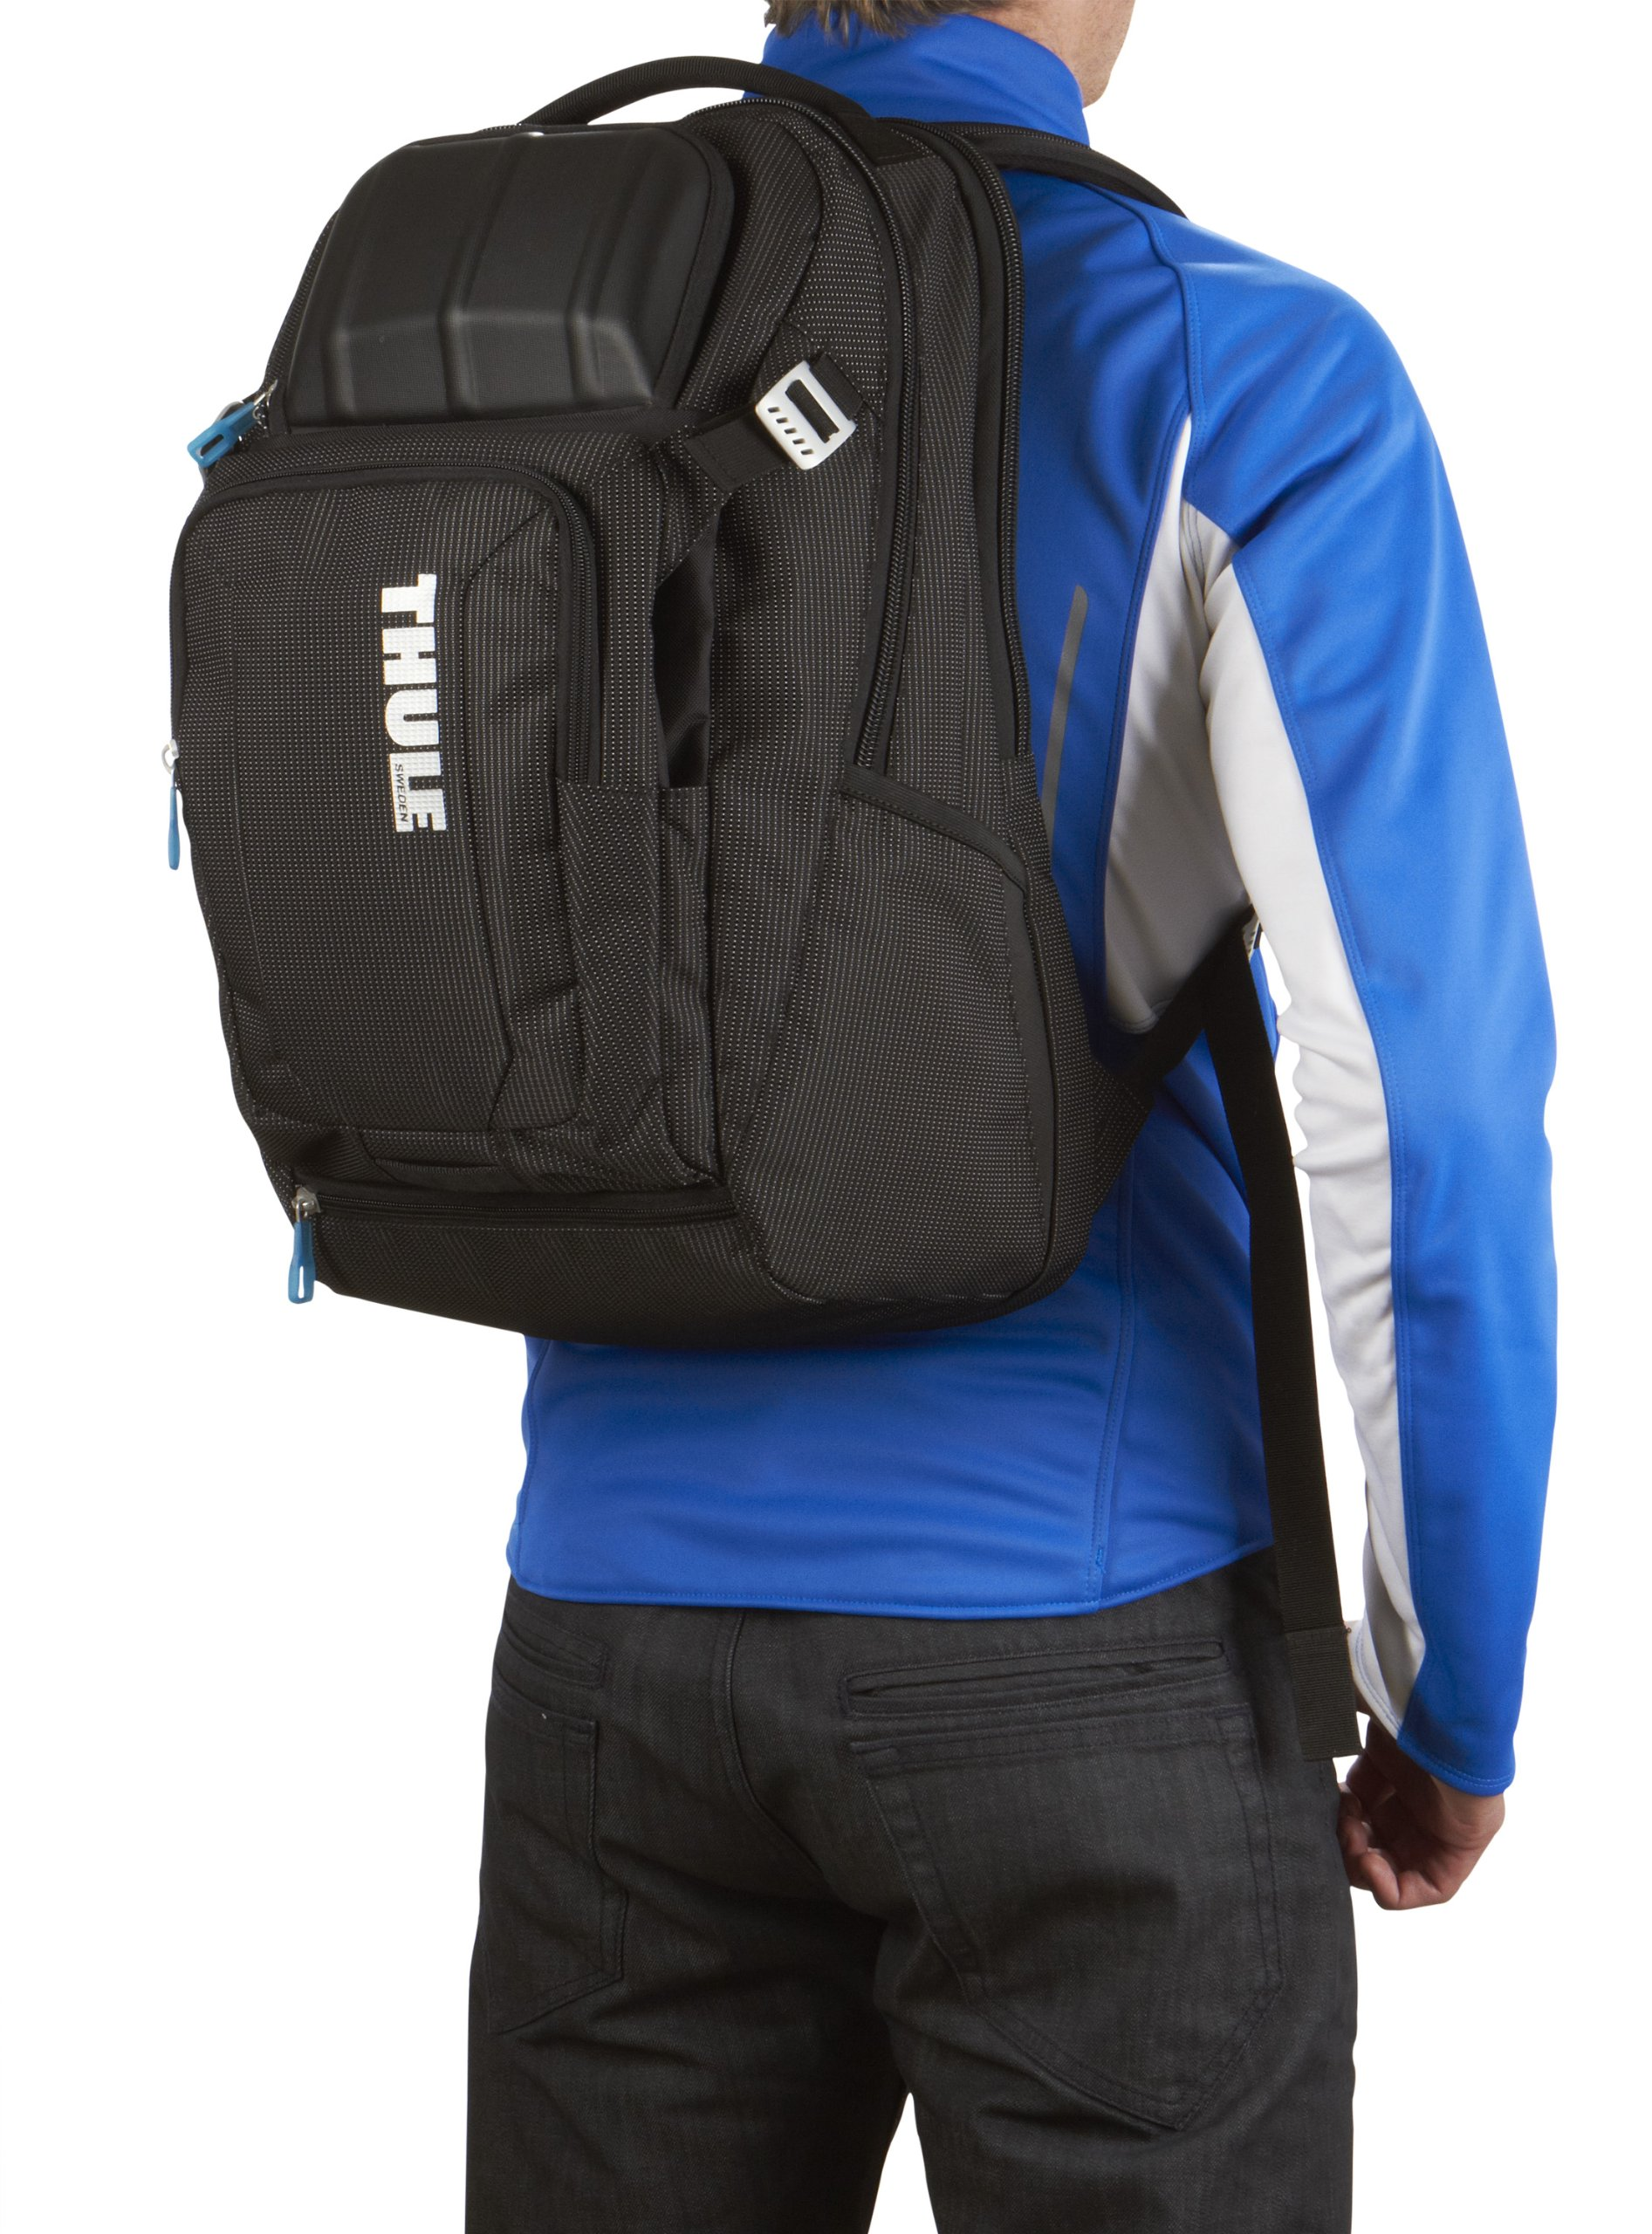 Thule Crossover 32L Backpack - Black by Thule (Image #5)